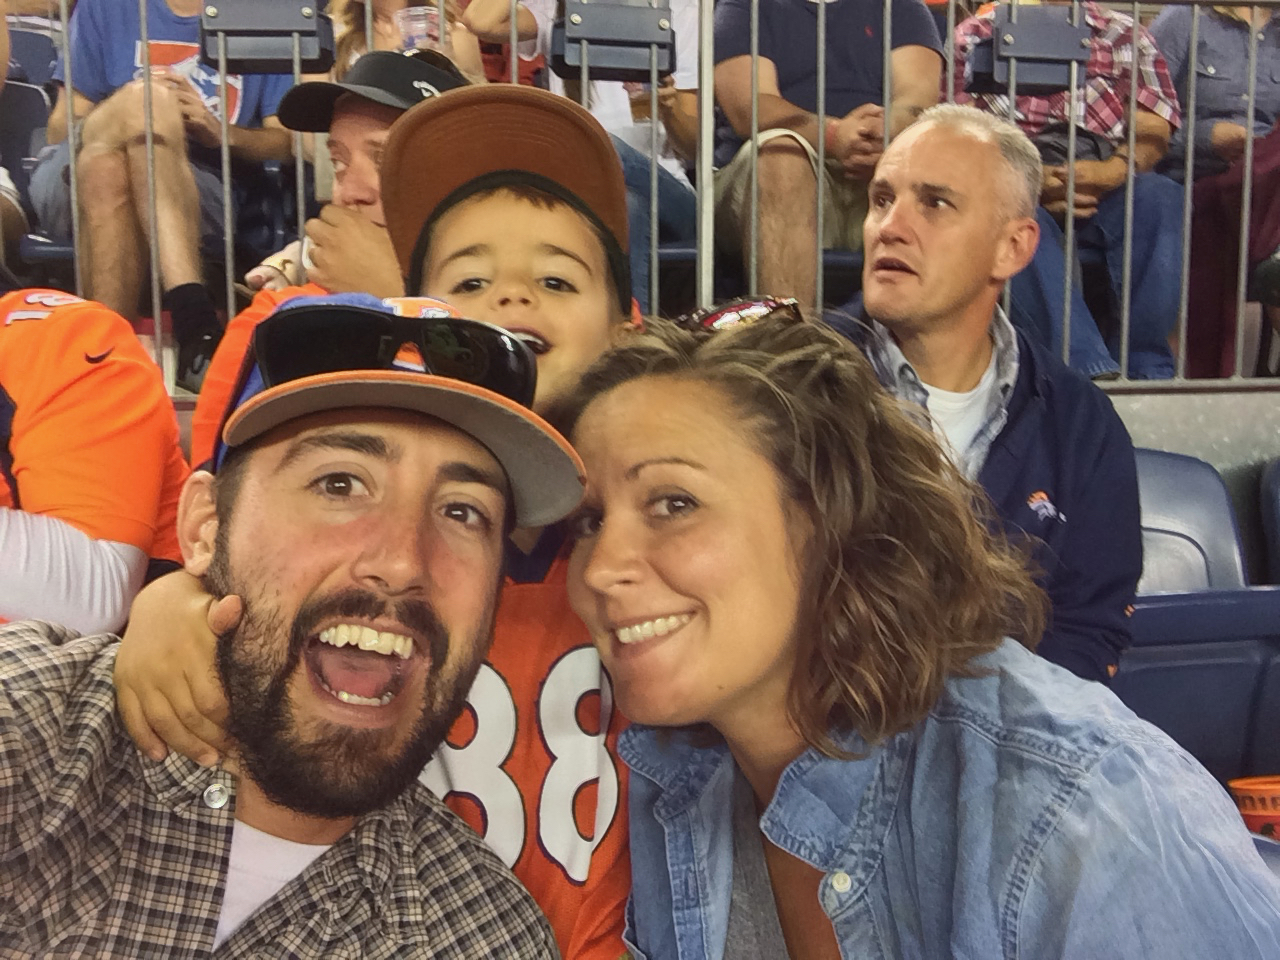 Broncos fans 4 life. - August 2016 - Denver, Colorado